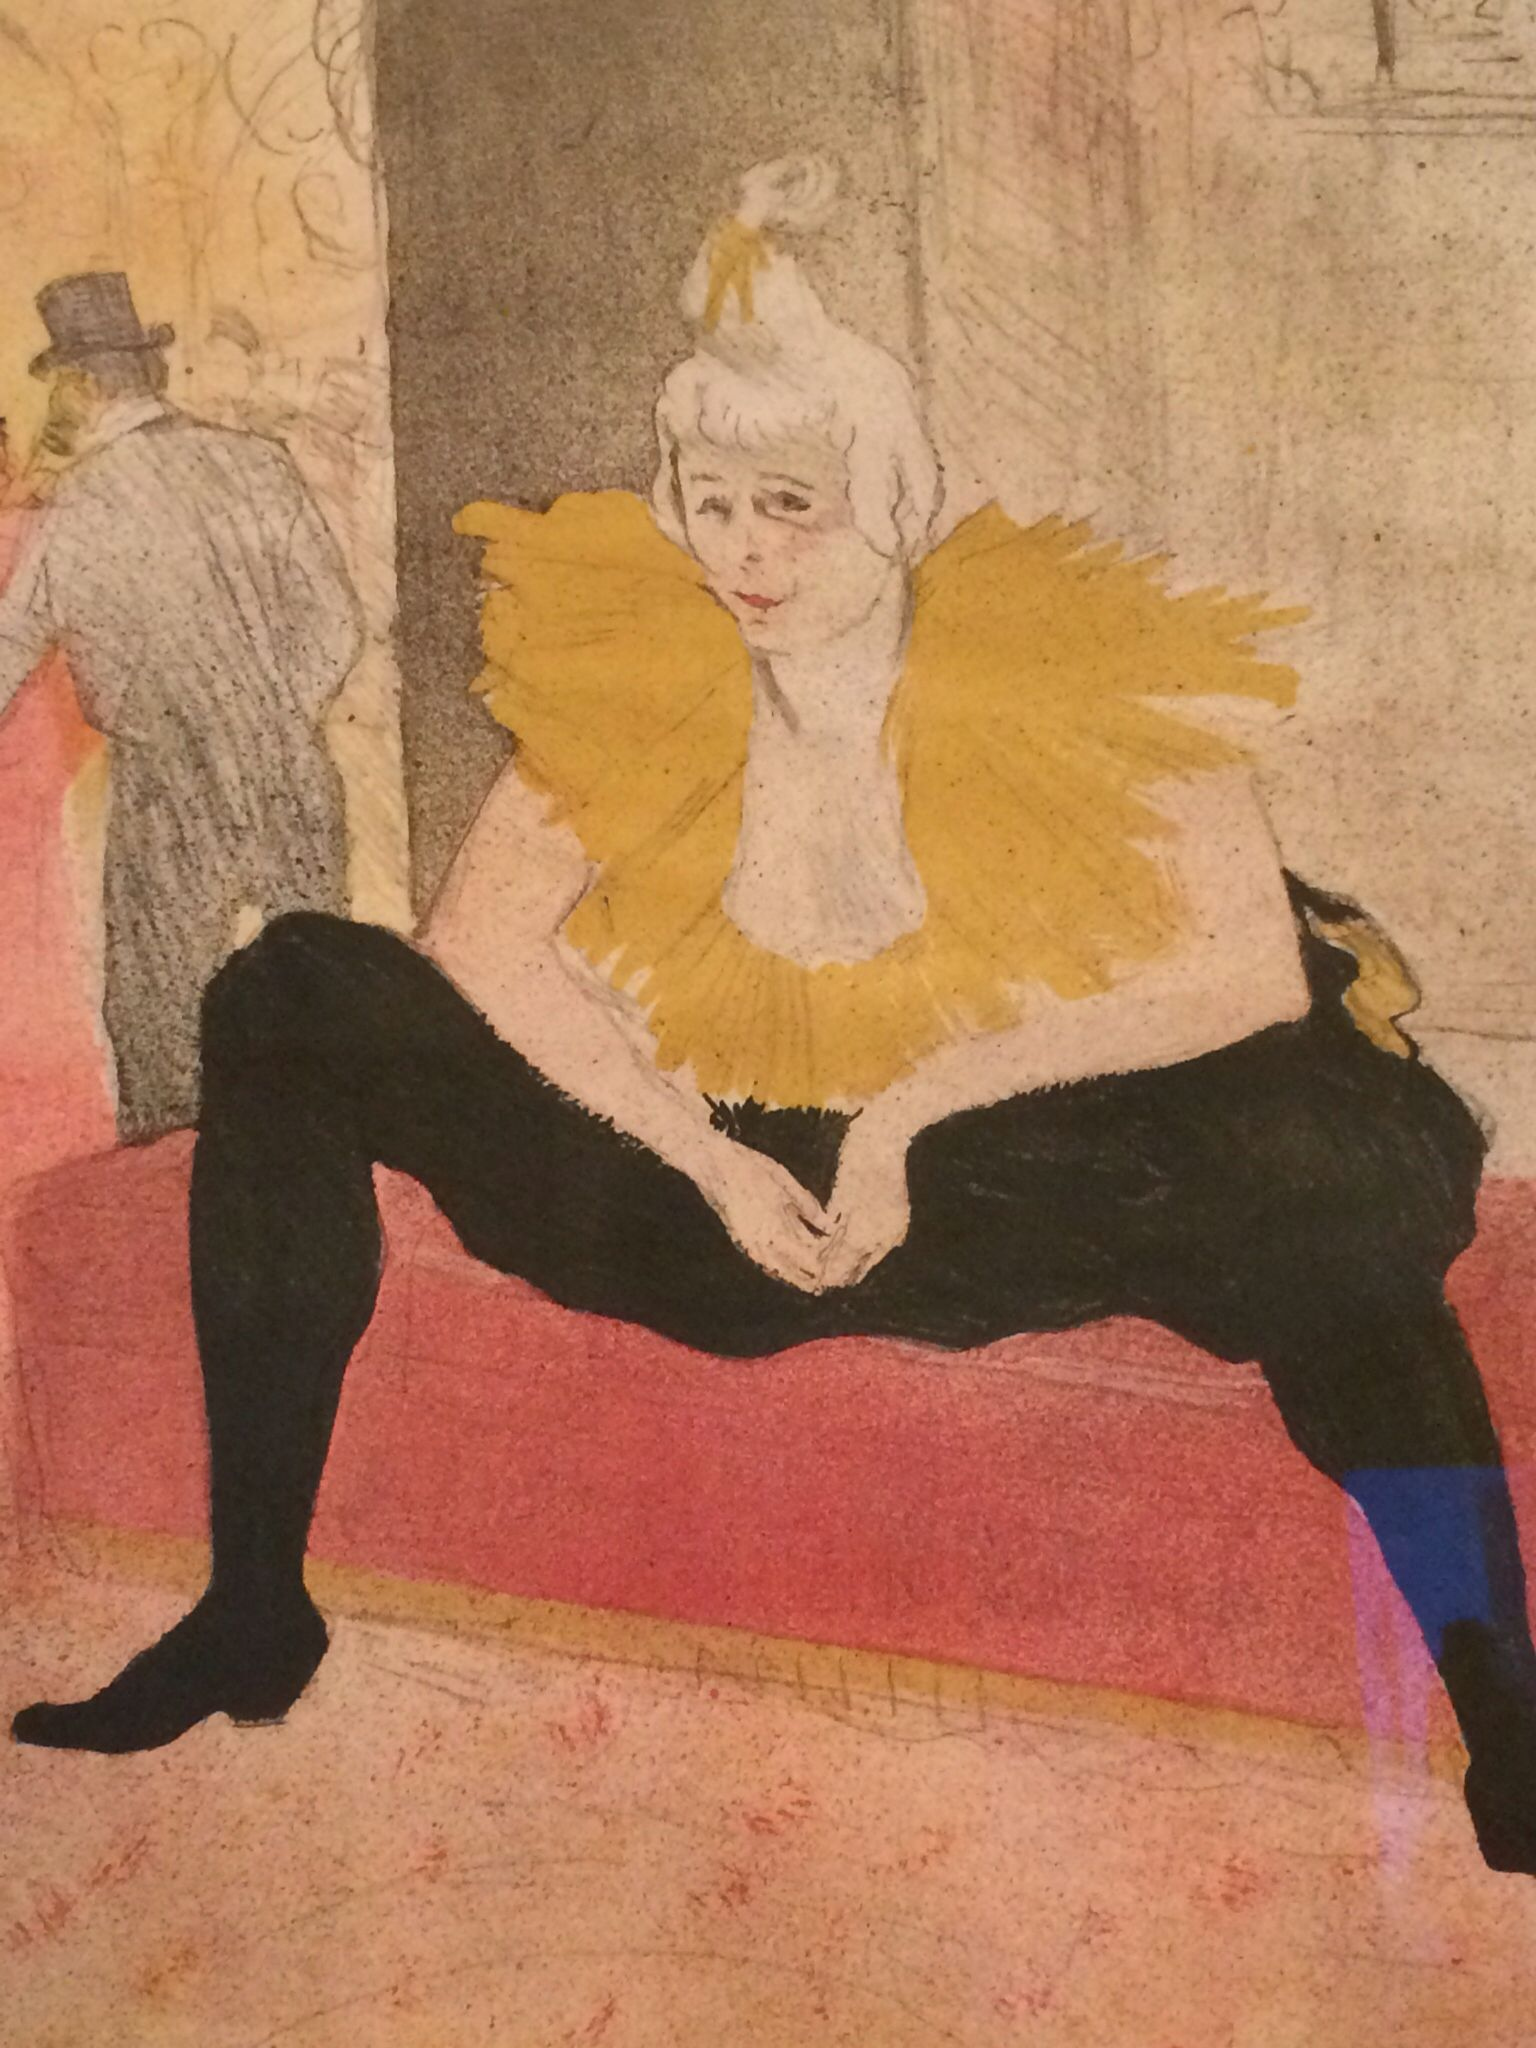 Toulouse-Lautrec @ the MoMA